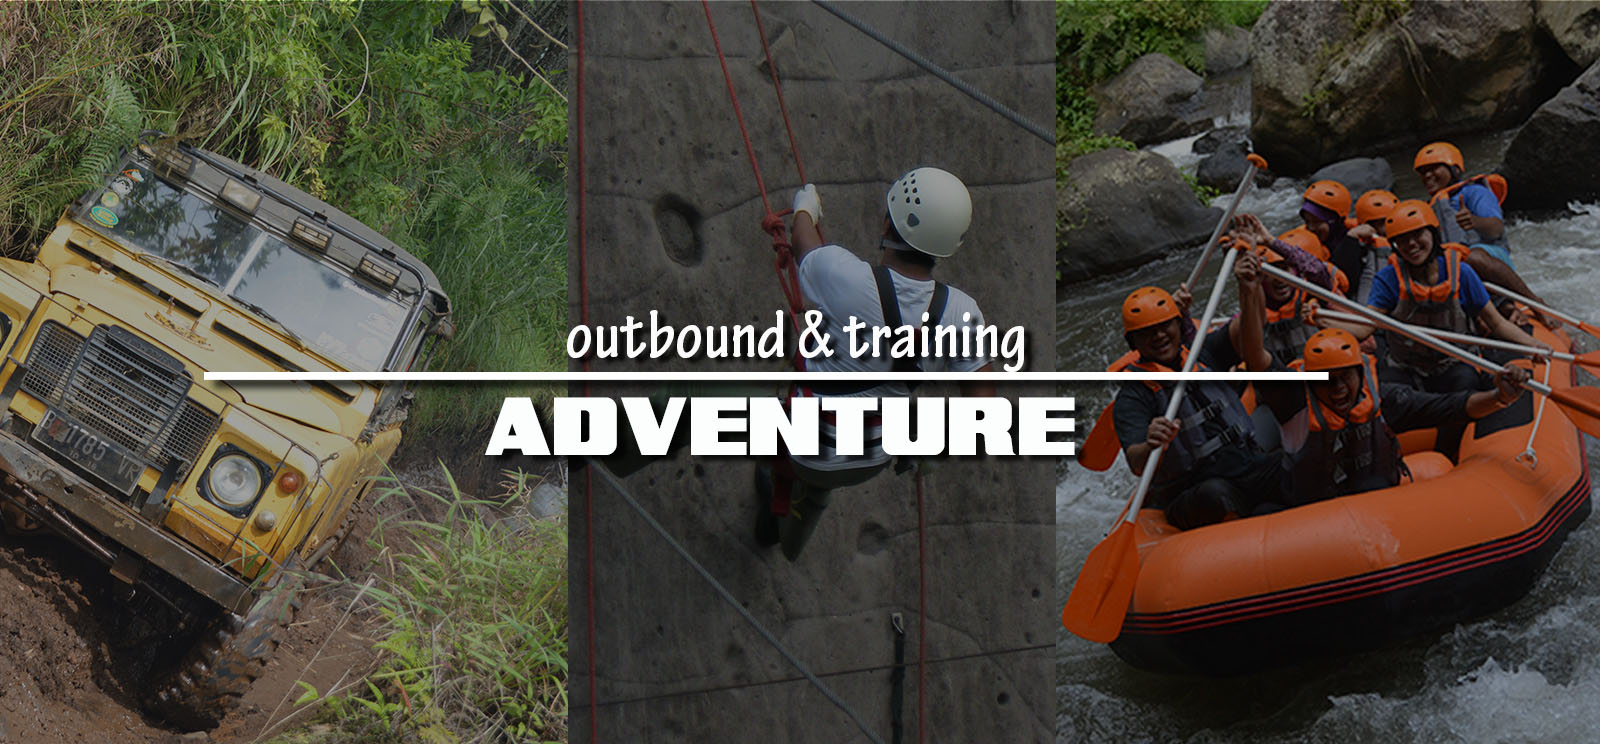 adventure-outbound-prasasti-selaras